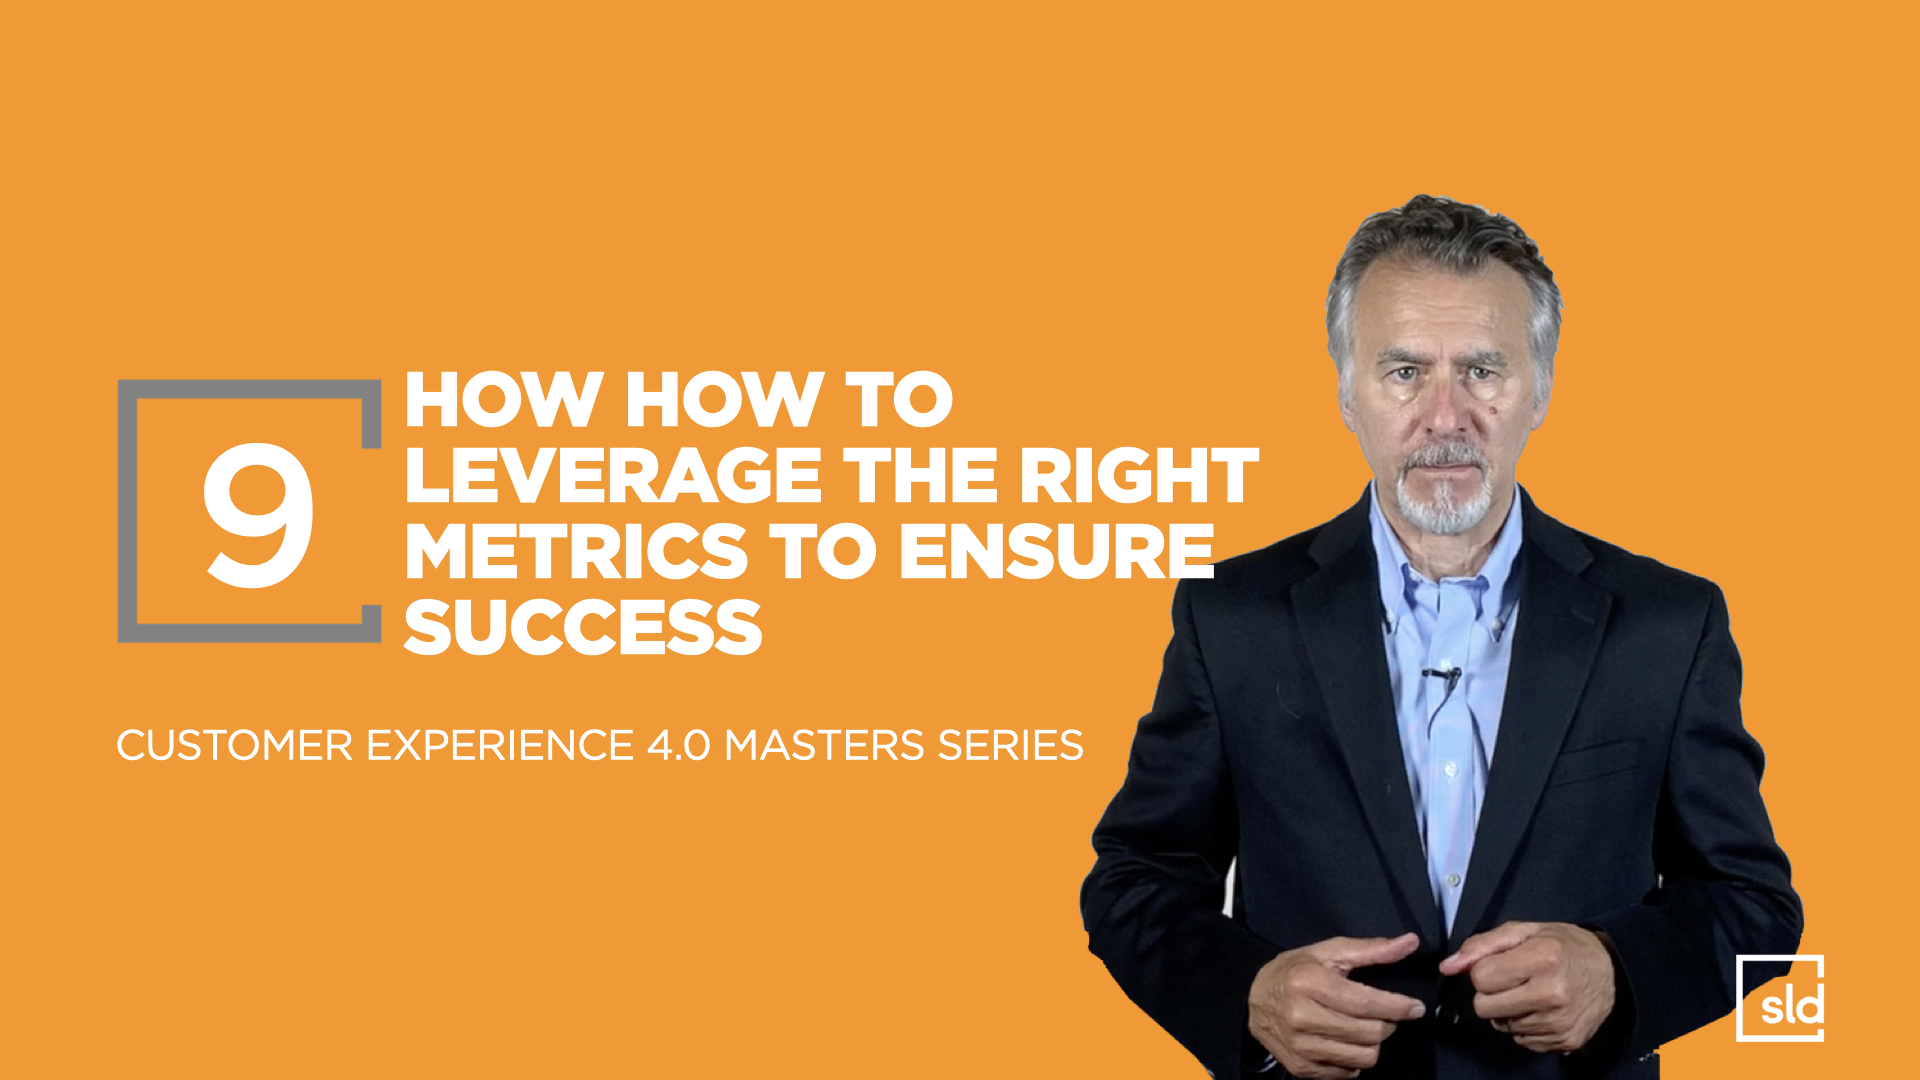 9. How to Leverage the Right Metrics to Ensure Success